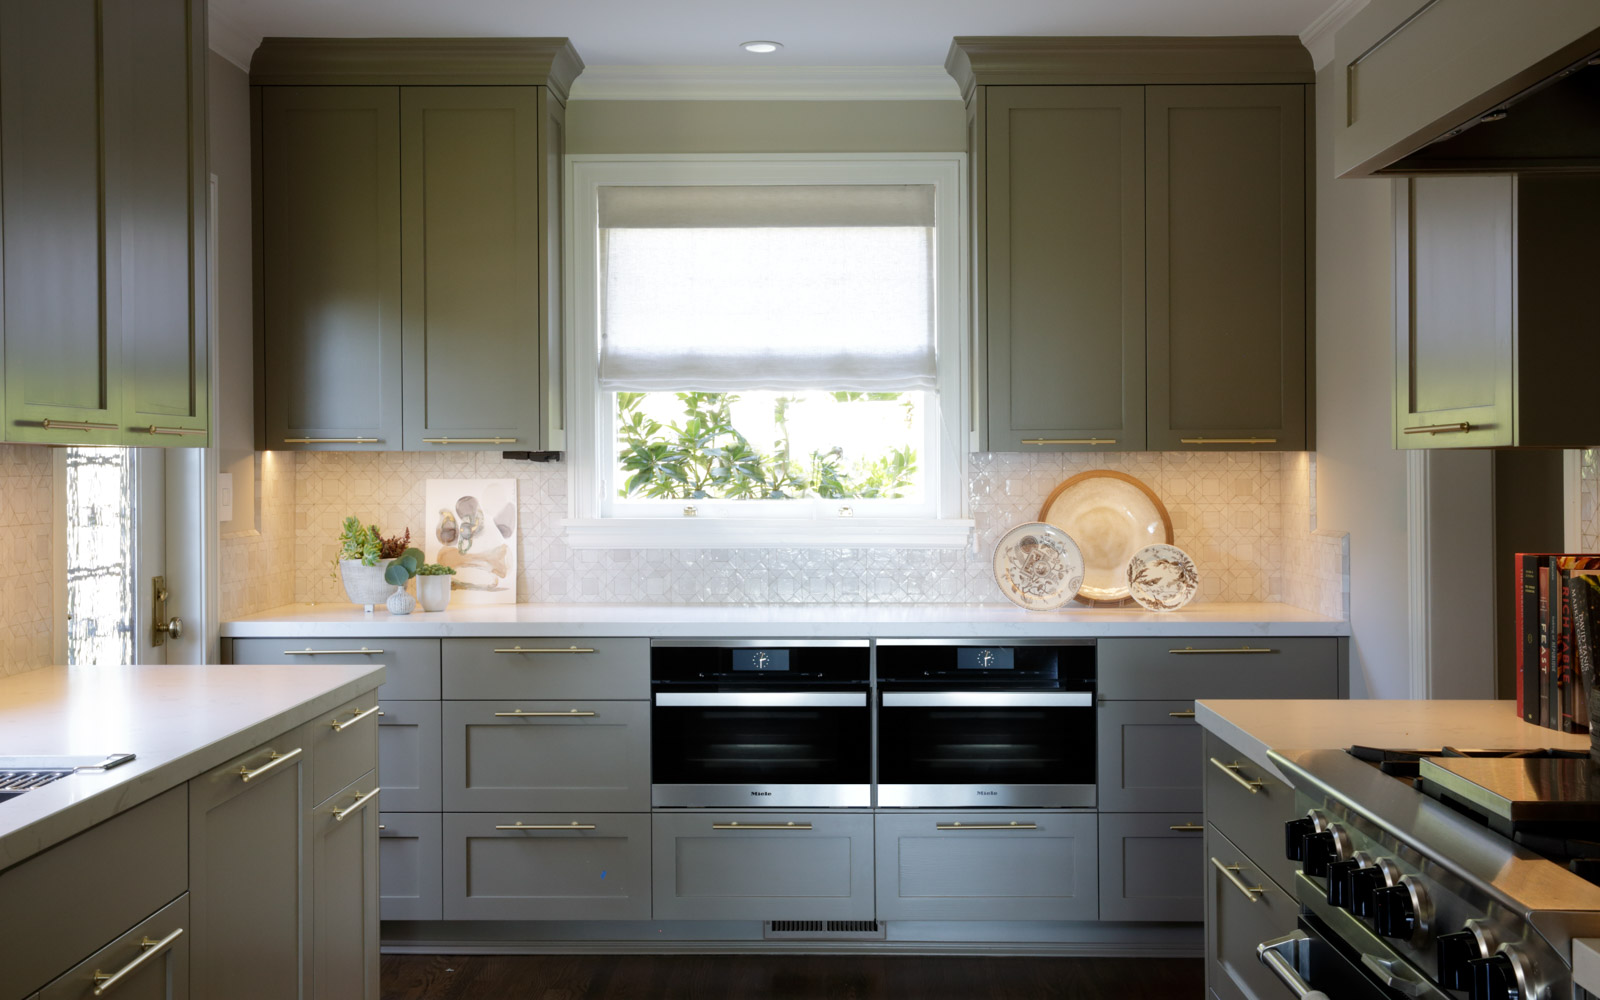 Ovens and custom painted cabinets demonstrating interior design by Laura Martin Bovard in Piedmont, CA